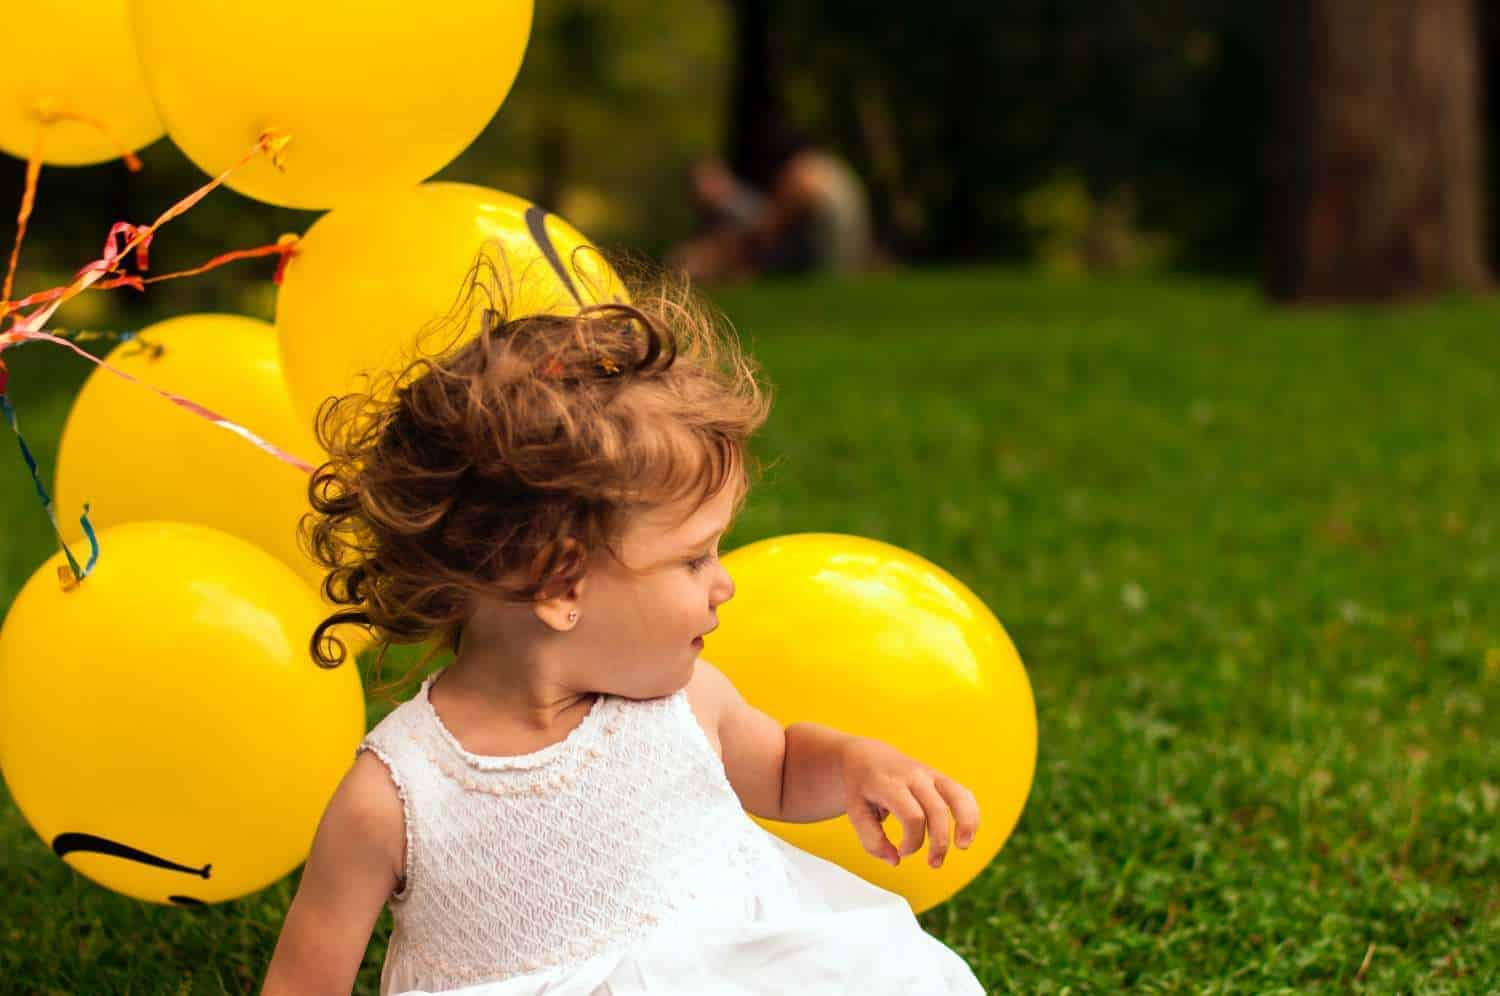 20 Fun Easy Activities To Do At Home With A 2 Year